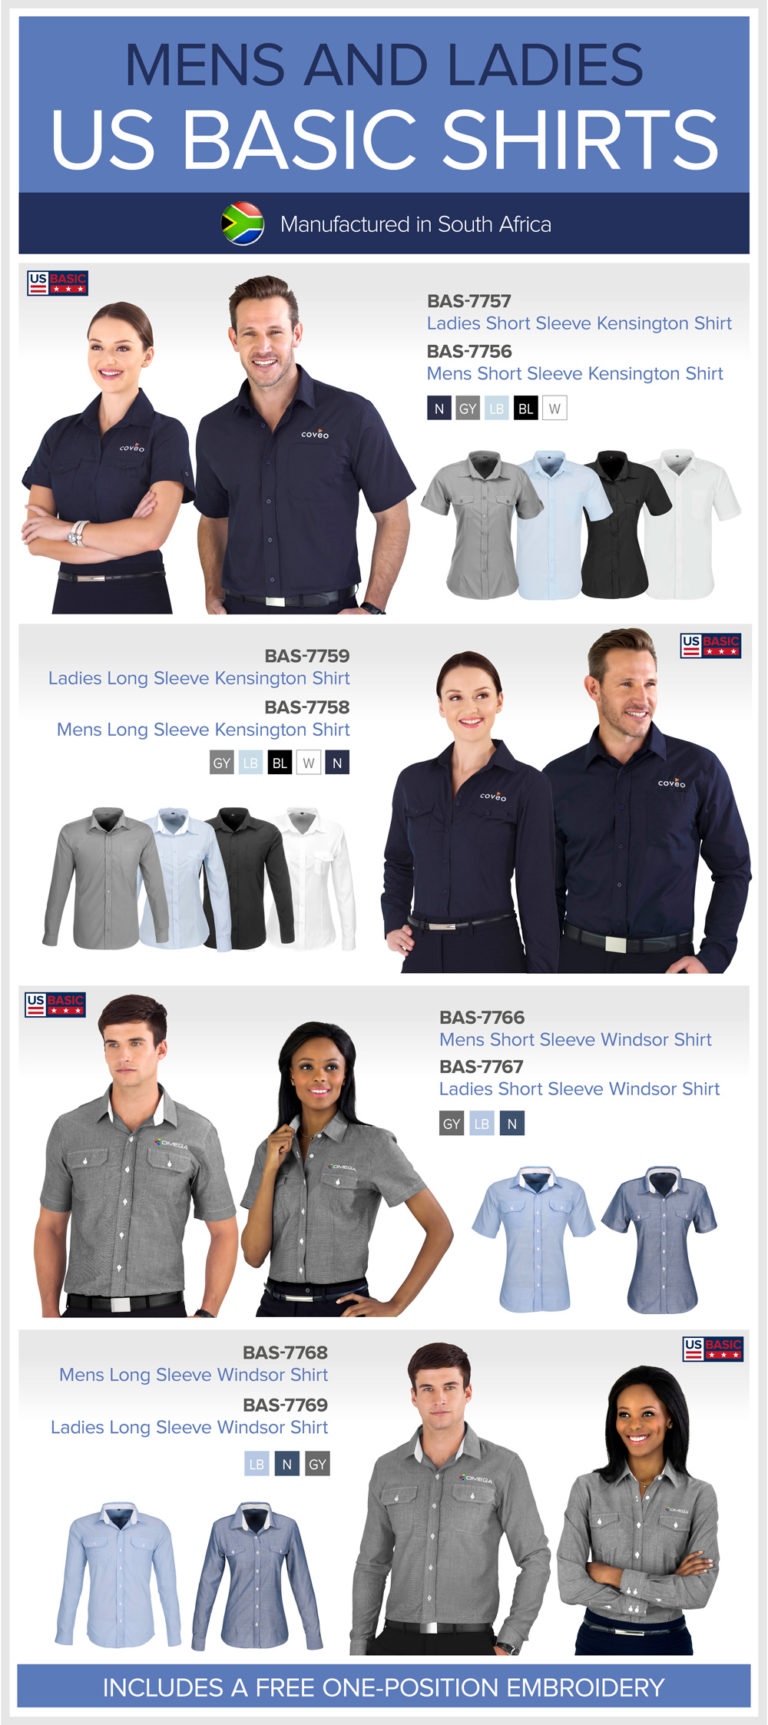 Locally Manufactured US Basic Shirts